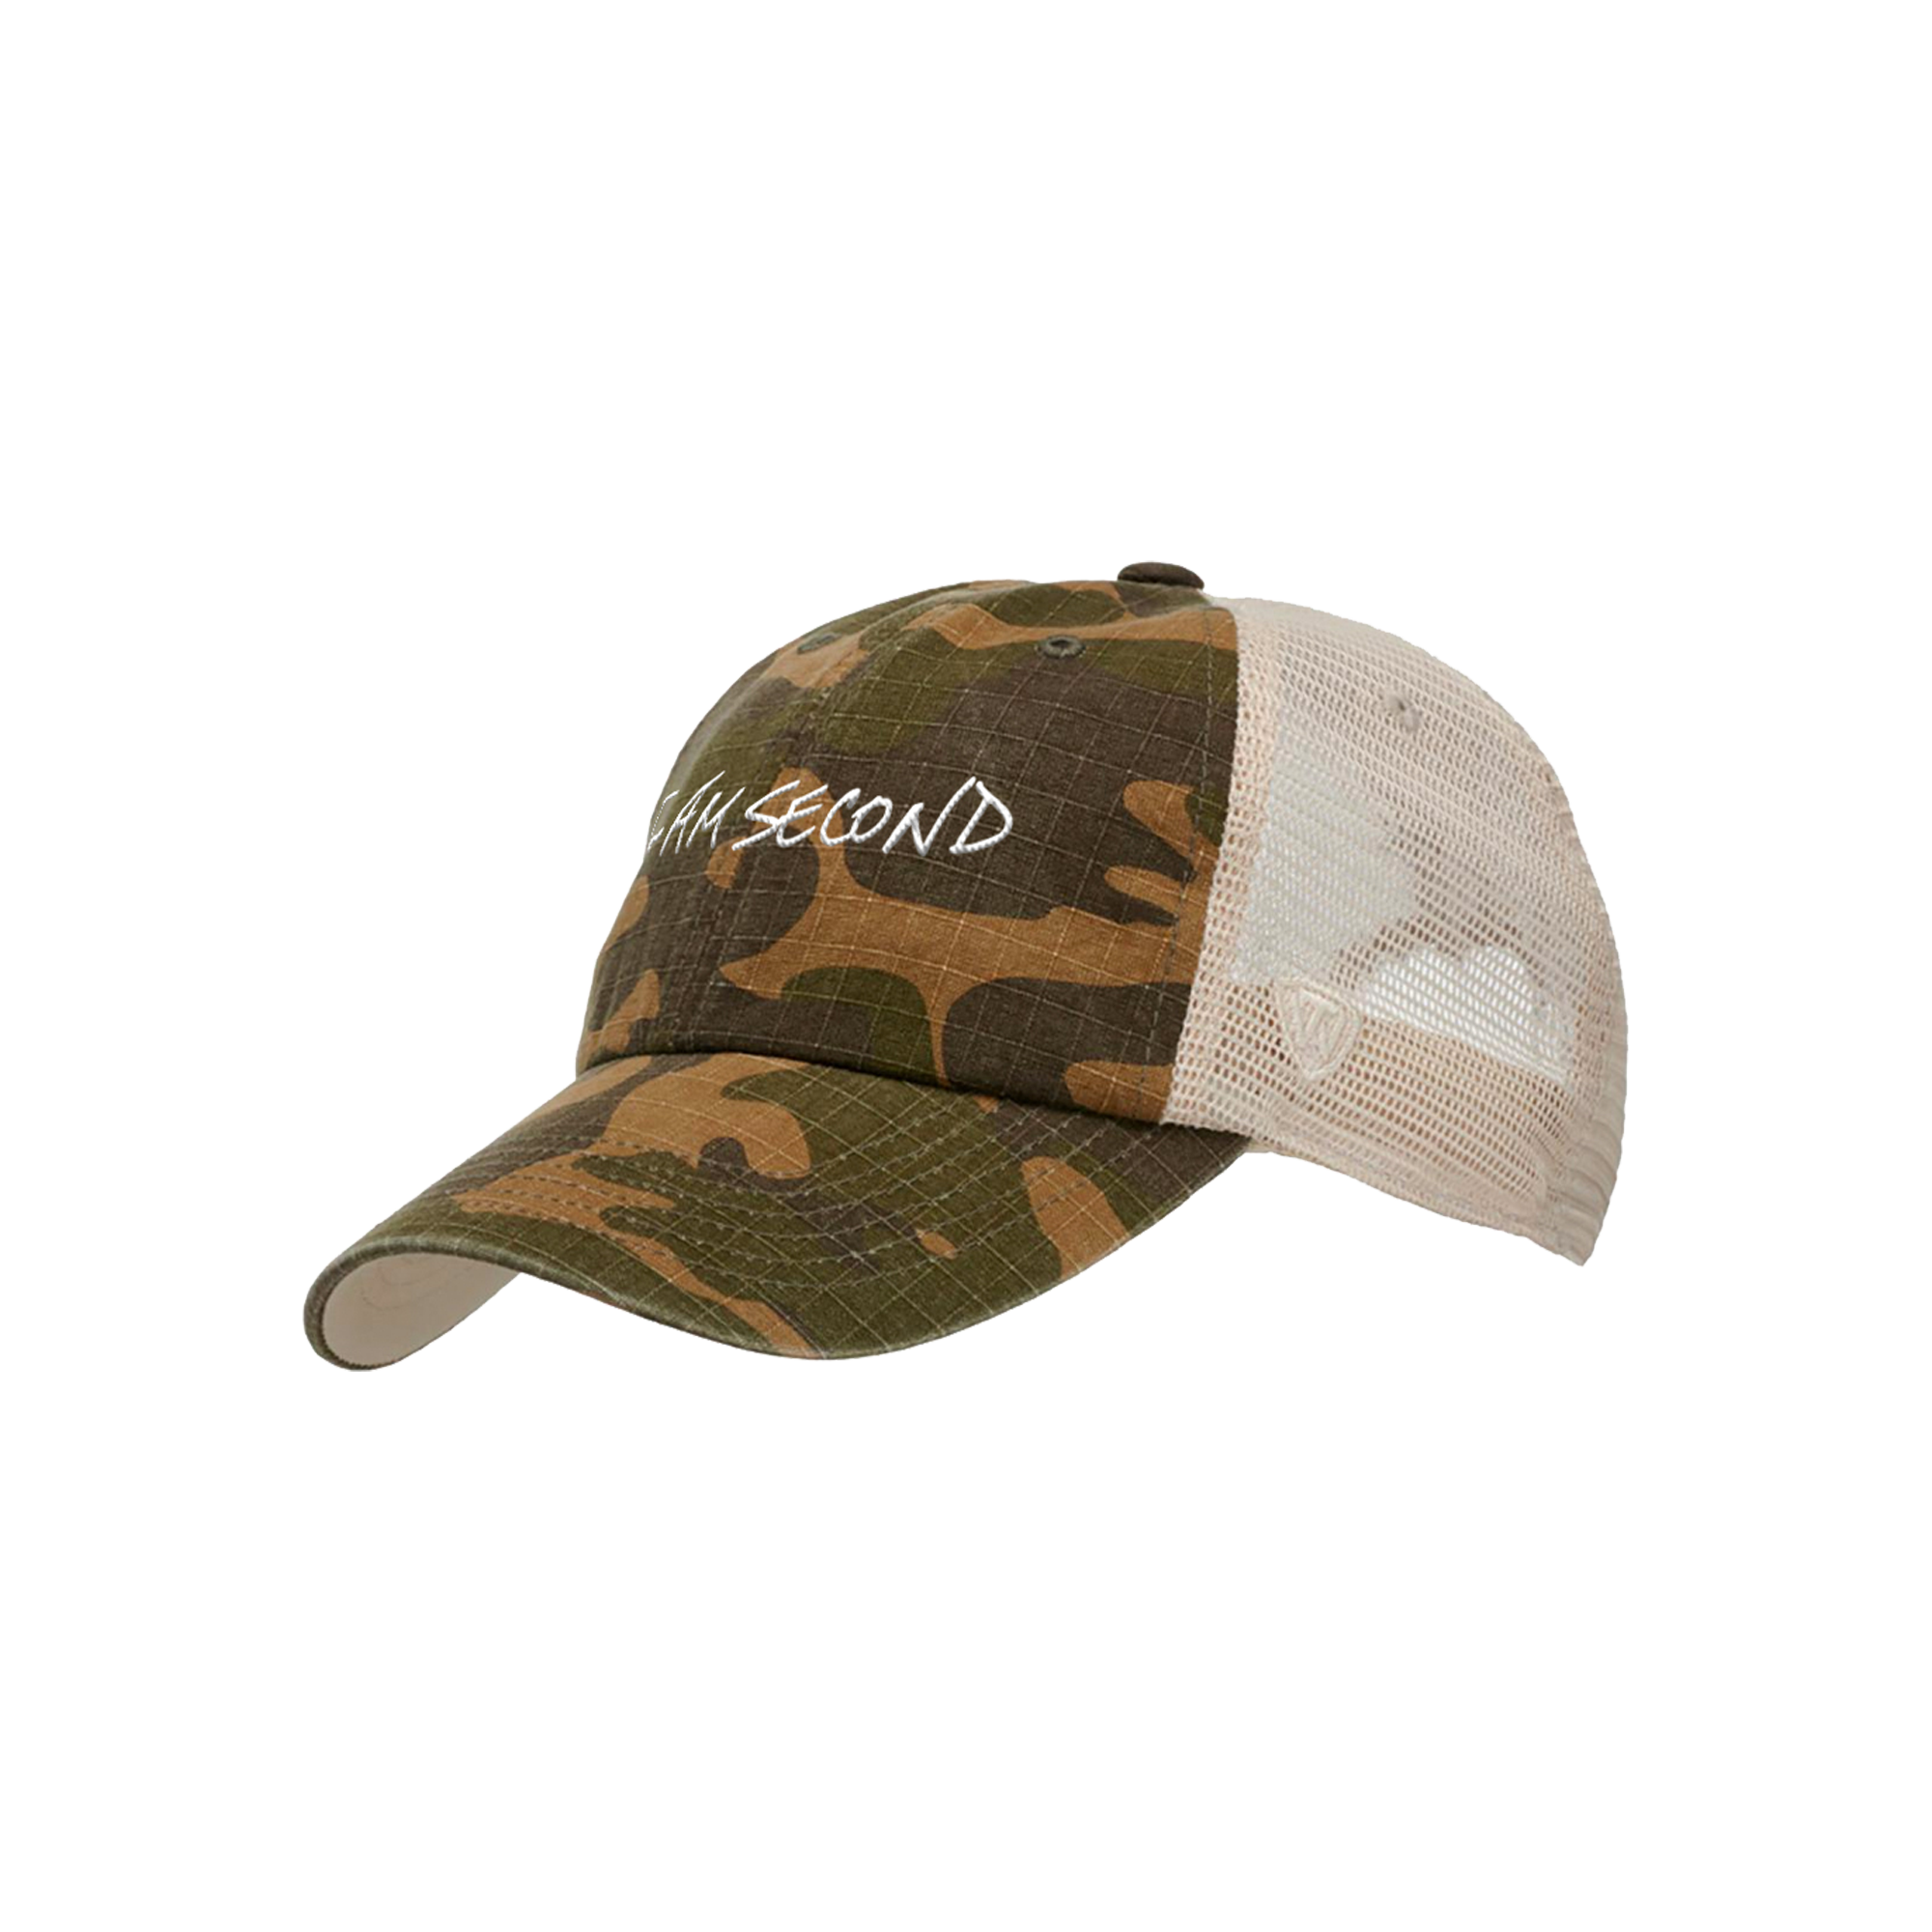 Unisex Top of the World Camo Hat